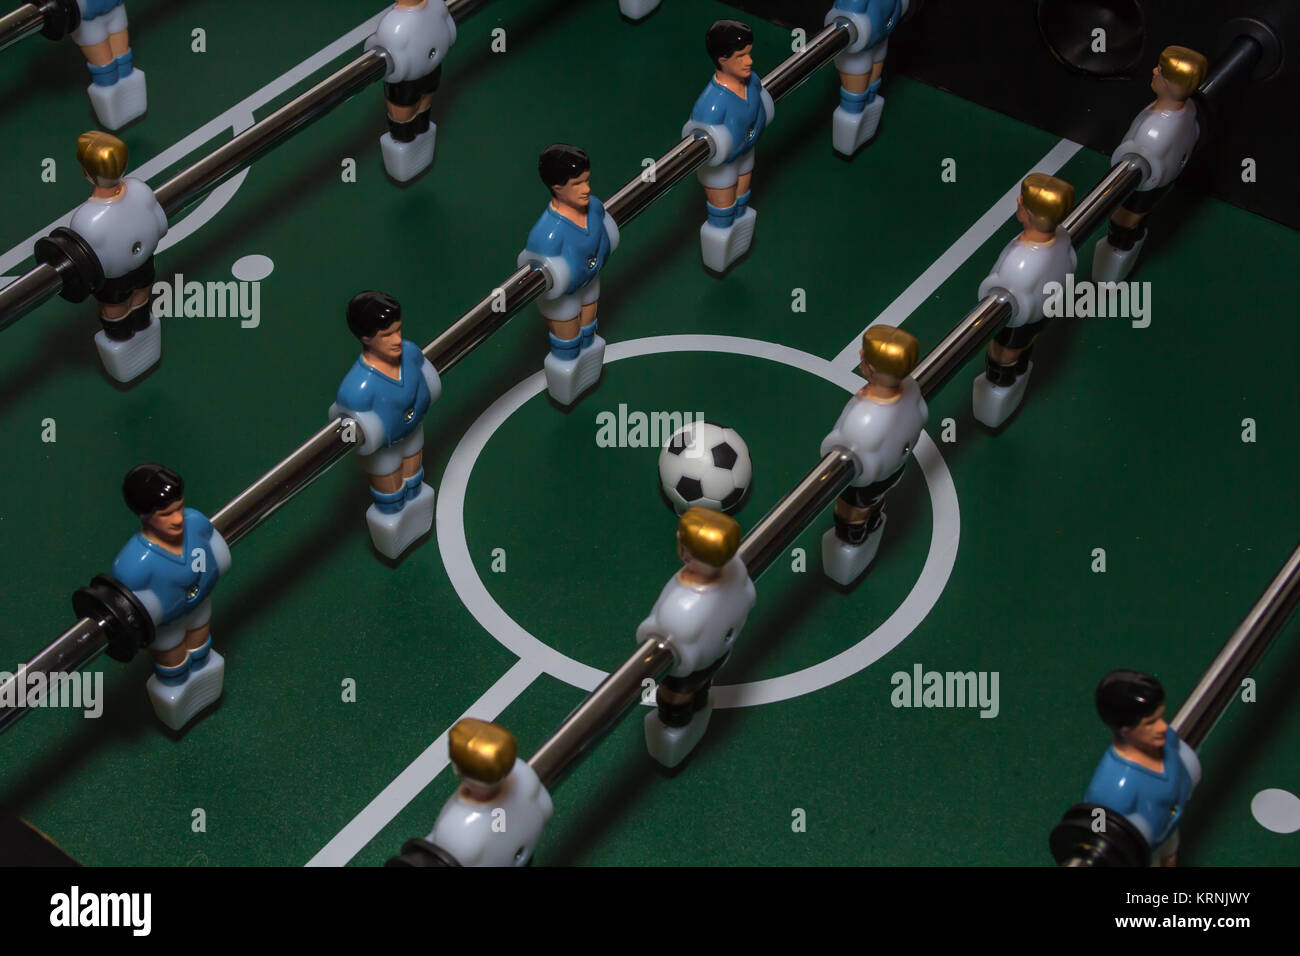 Soccer table game. Green field with blue and white plastic footballers. Sport background - Stock Image